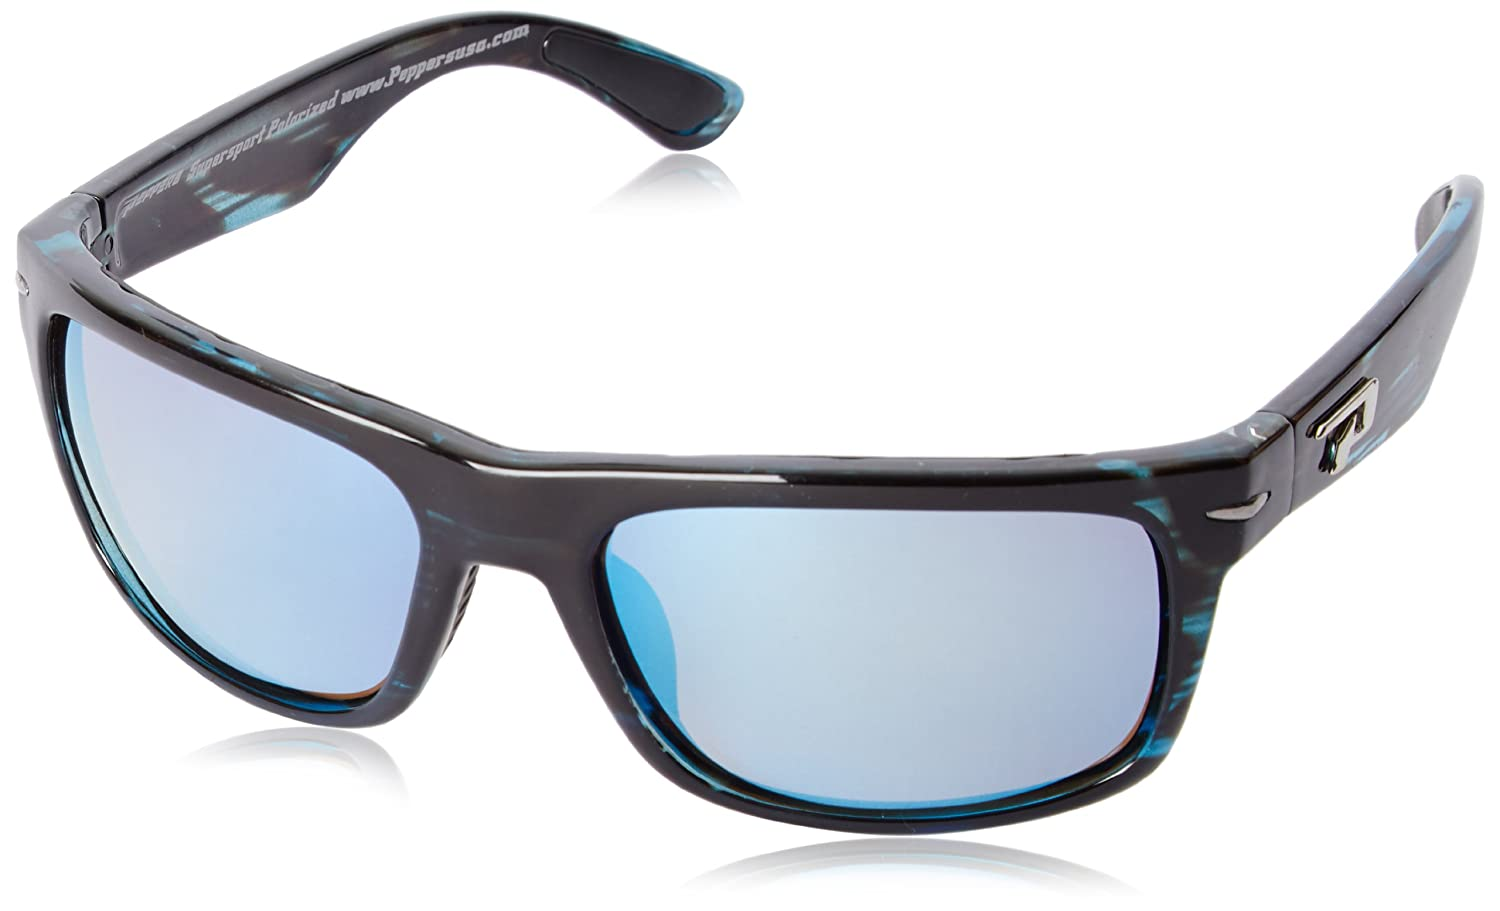 Ray Ban Prescription Sunglasses Target - Shabooms